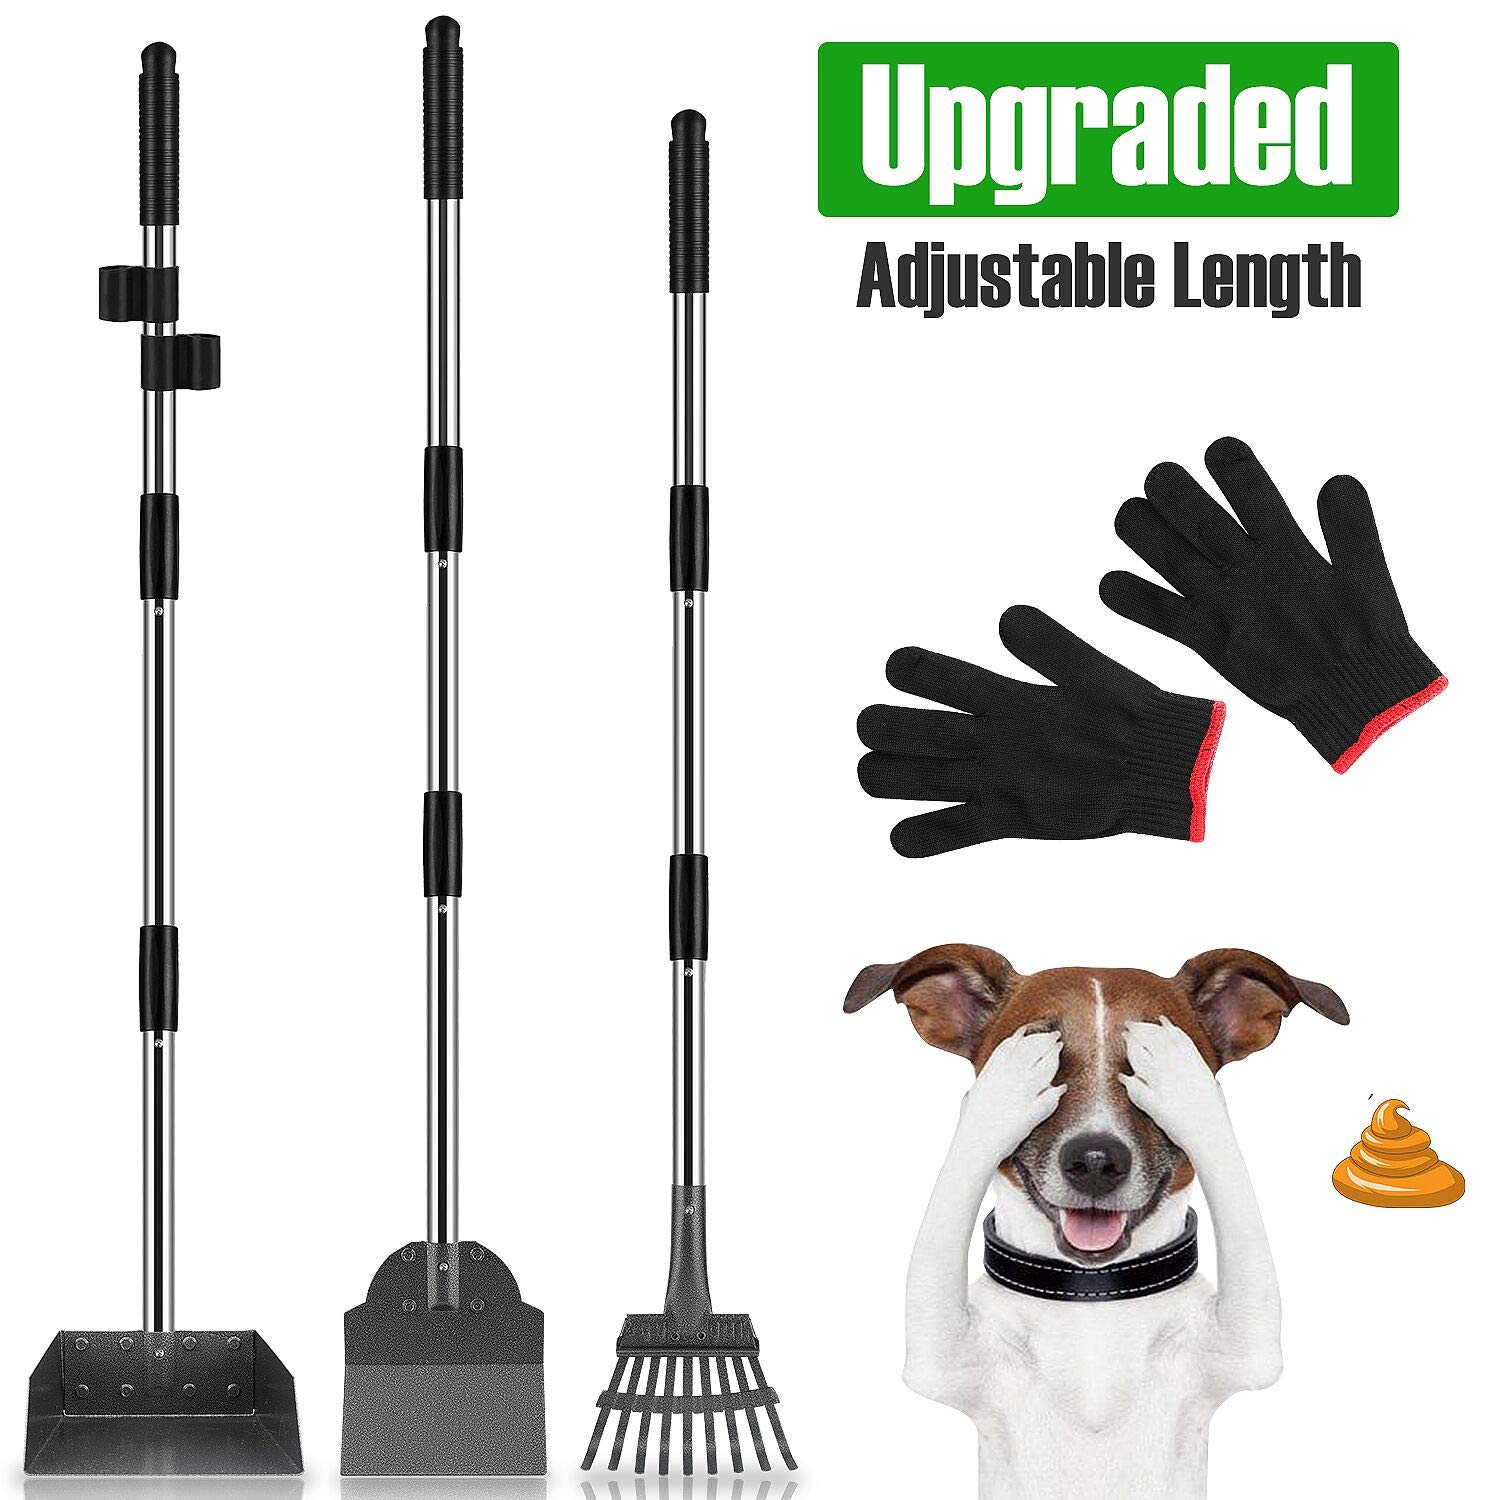 MOICO Dog Pooper Scooper,3 Pack Upgraded Adjustable Long Handle Metal Tray,Rake and Spade Poop Scoop,Pet Waste Removal Pooper Scooper for Large Dogs and Pets by MOICO